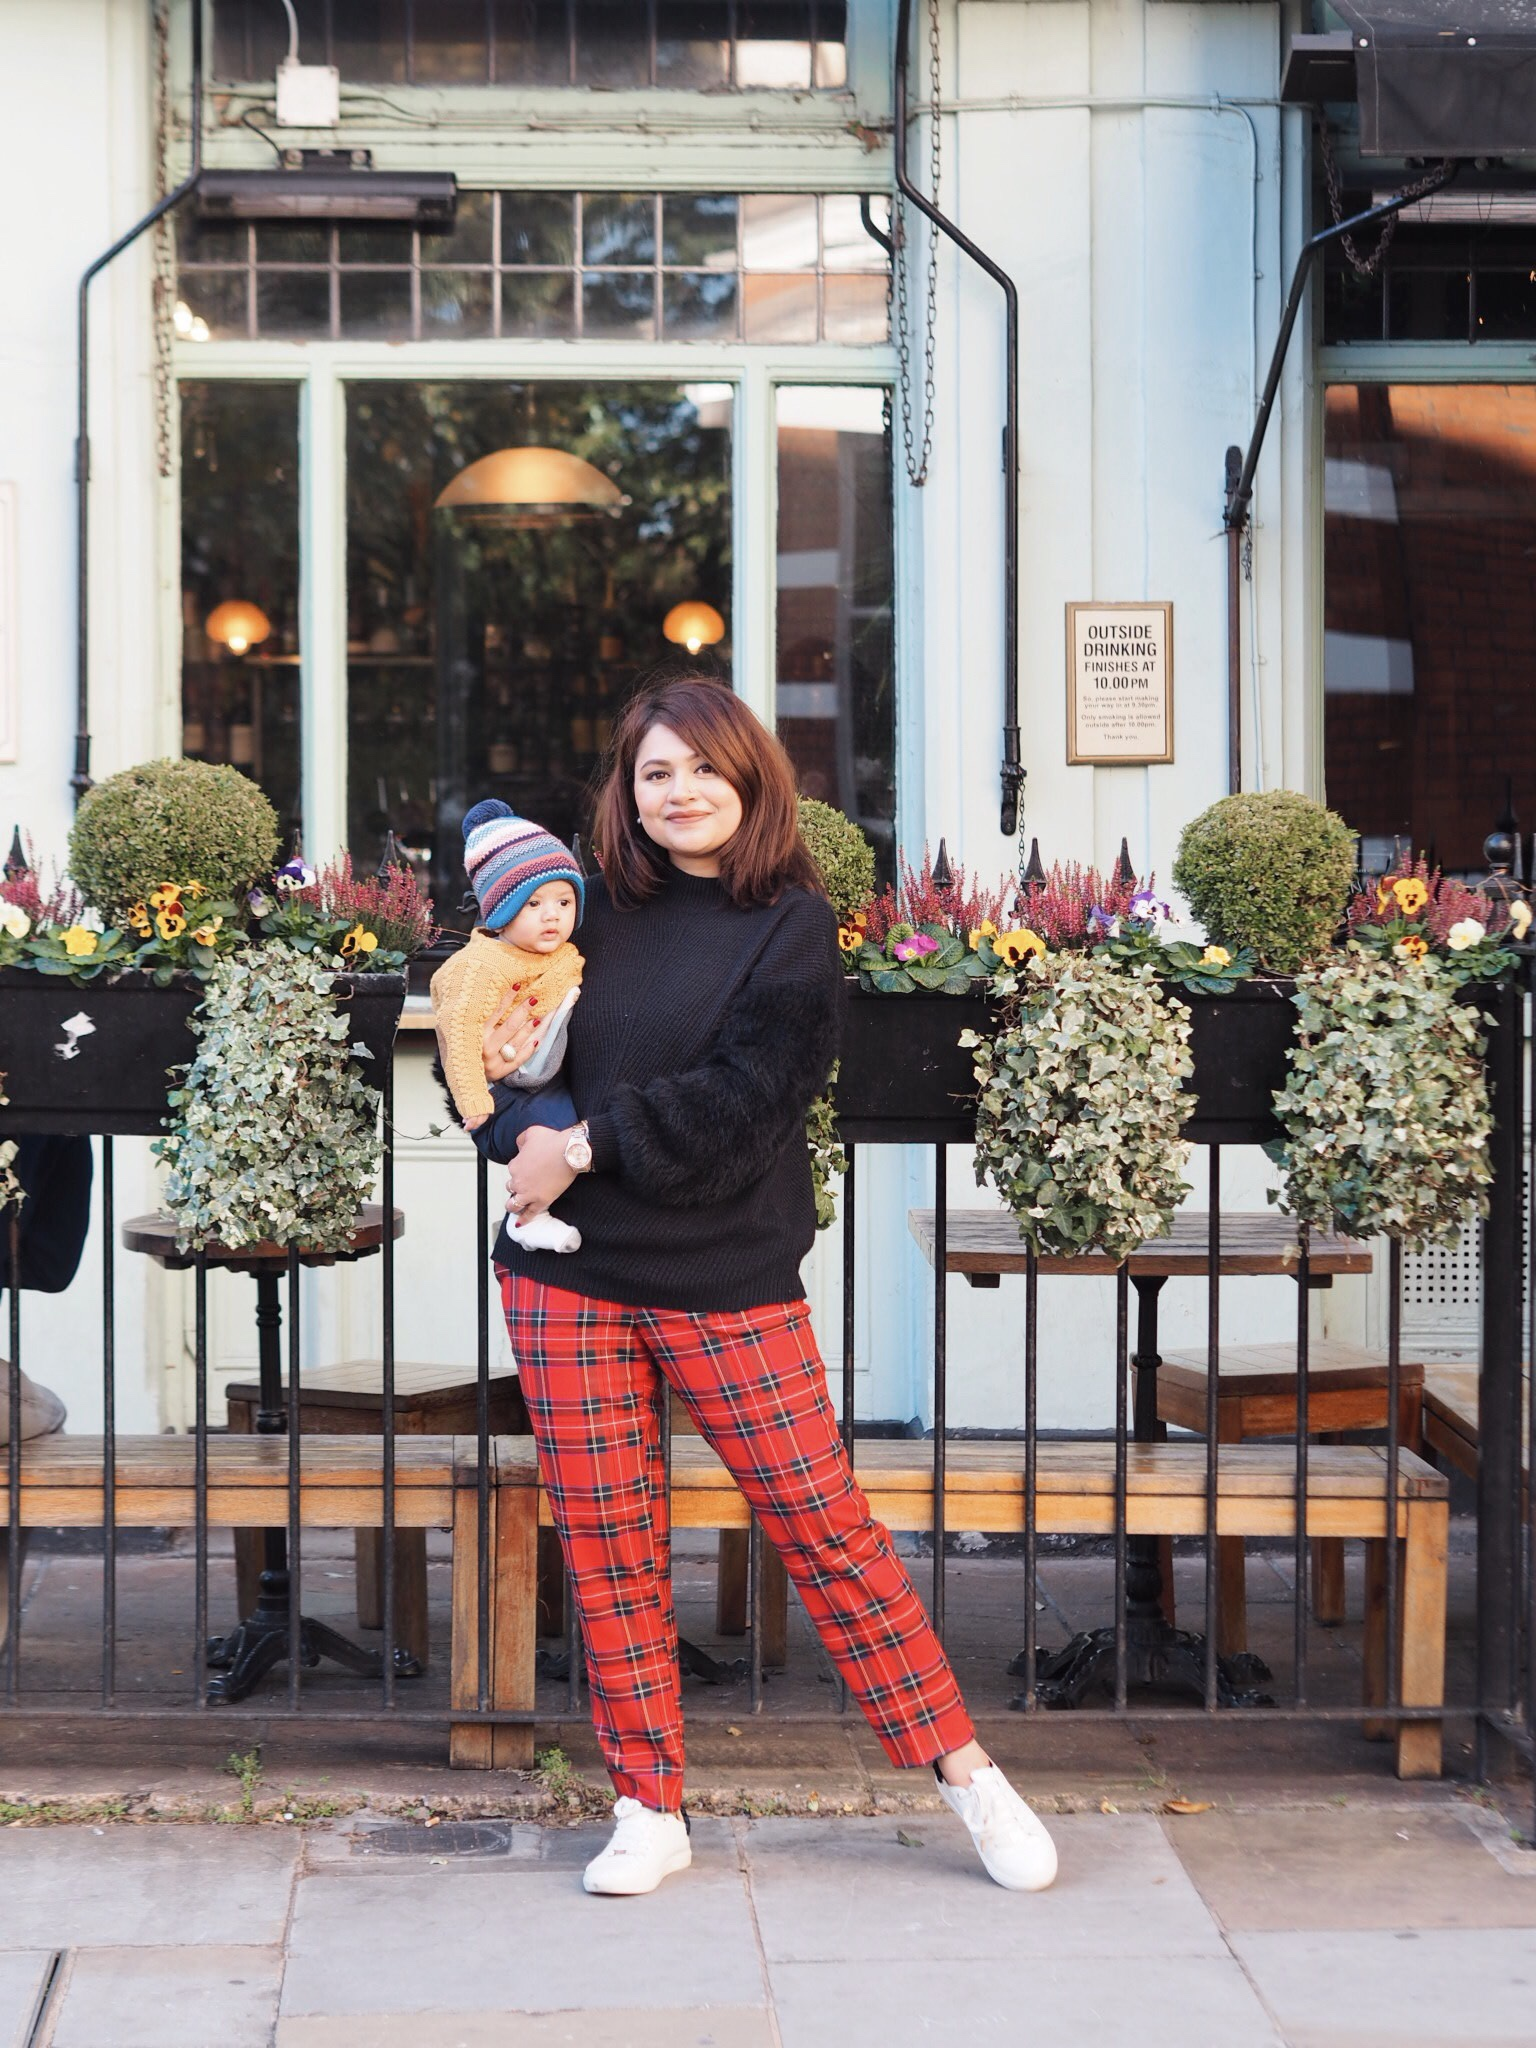 London Digest: Of Tartan Pants and Dishoom at Kensington